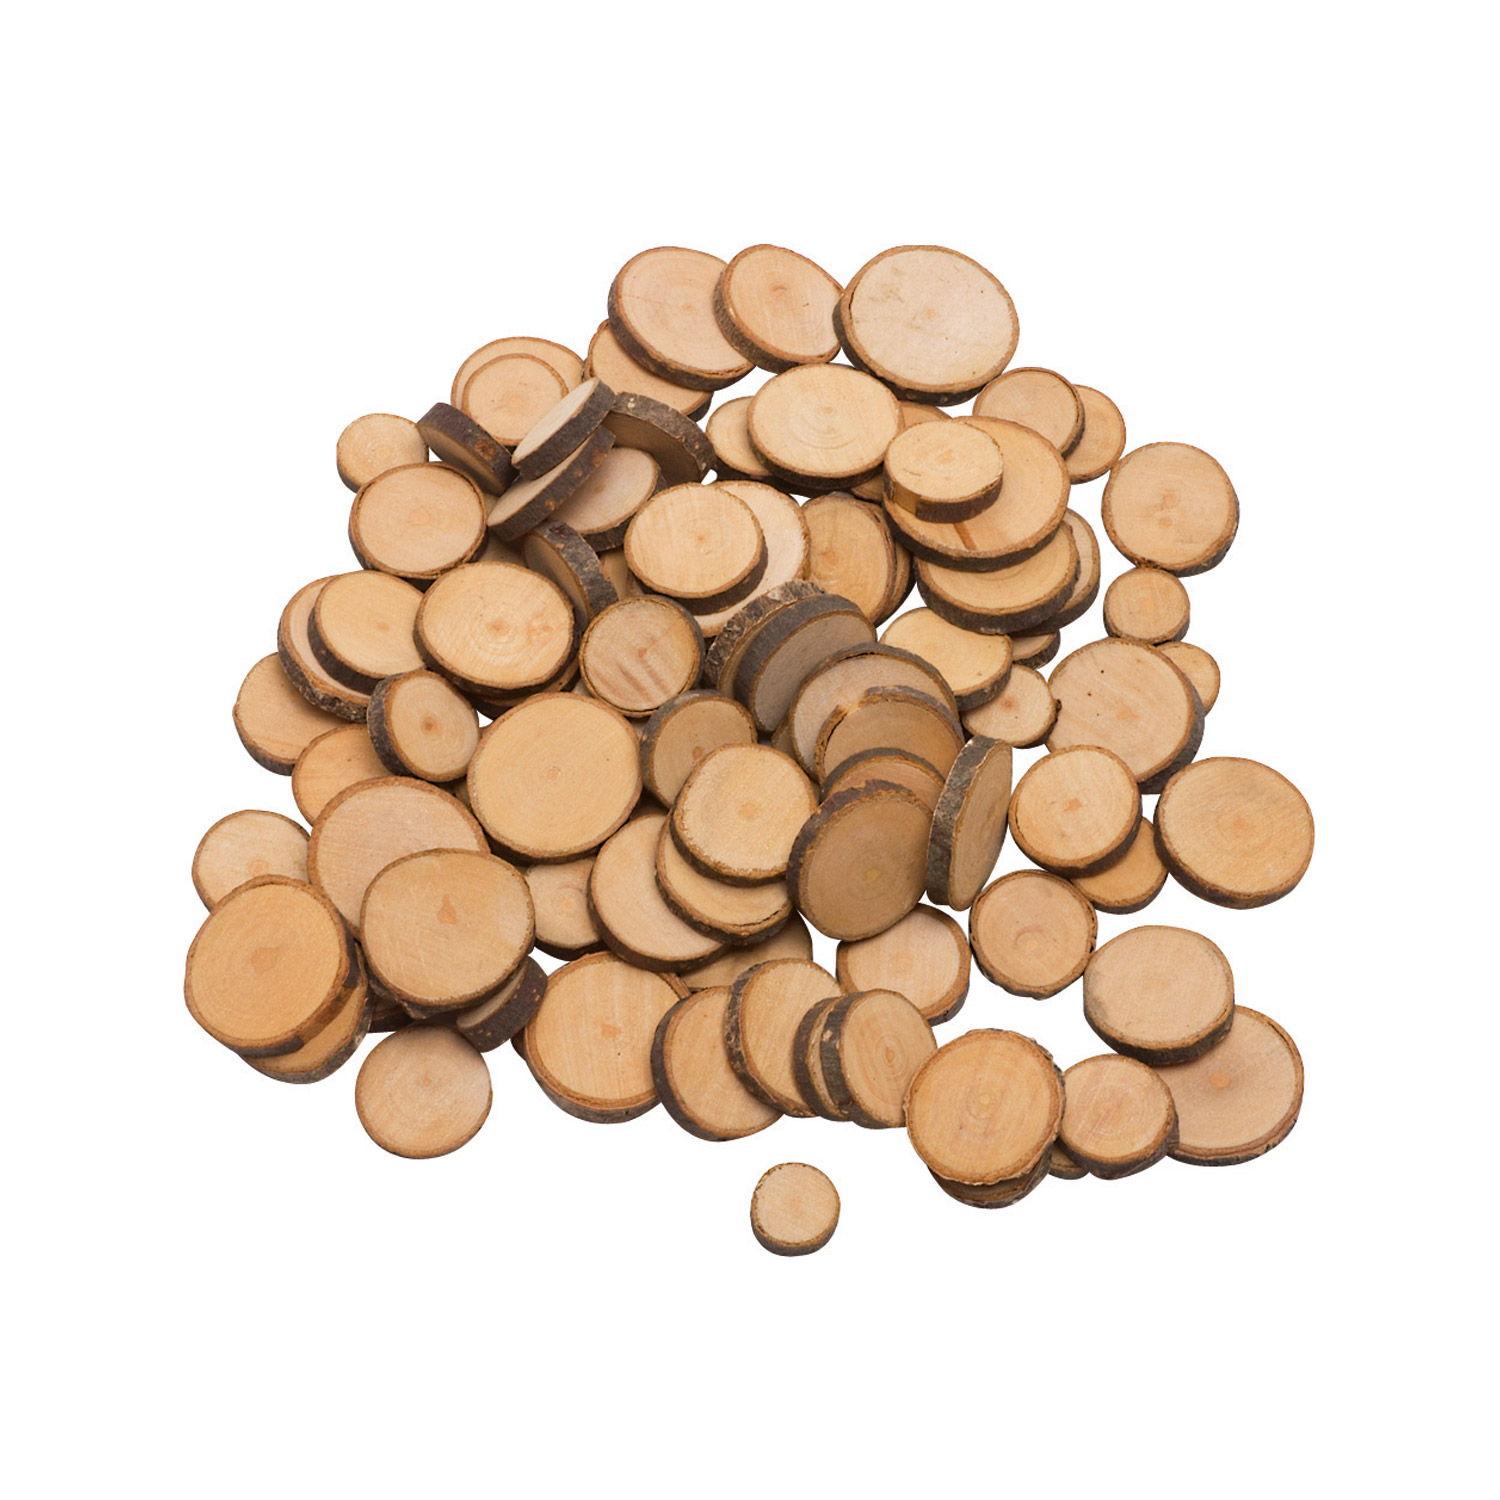 Wooden Play Money made of Sliced Birch Branches